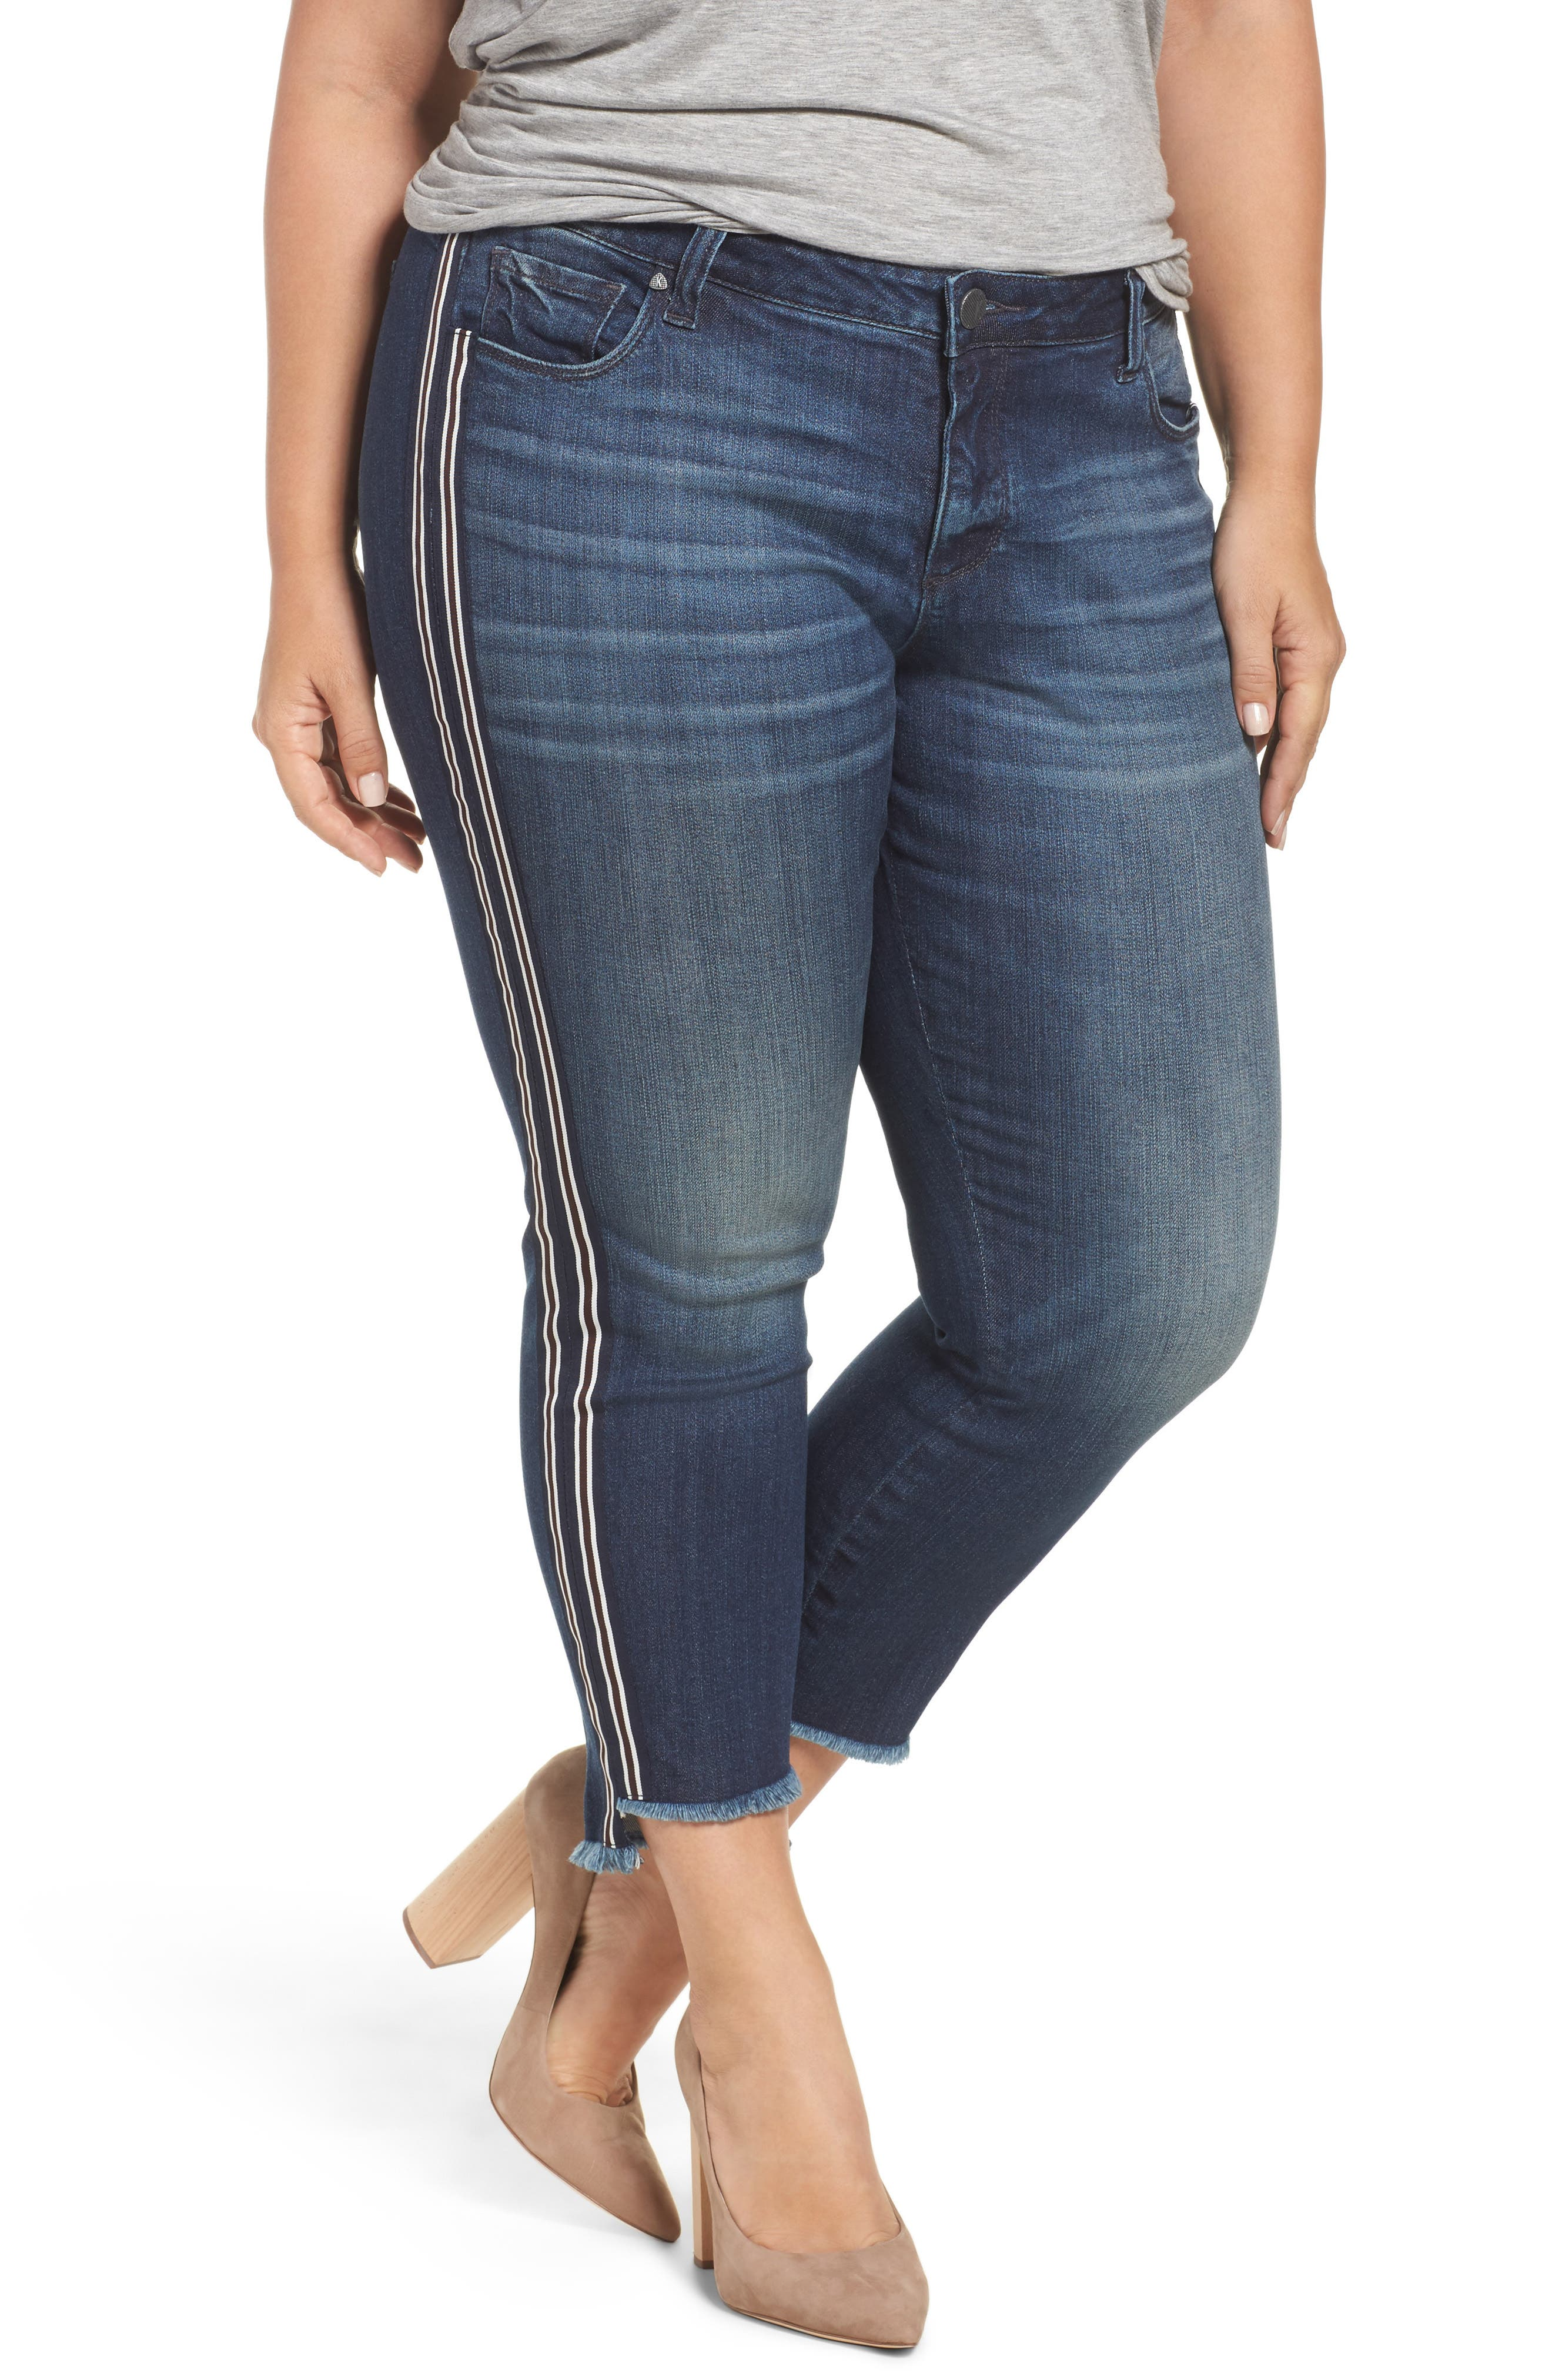 Plus Size Kut From The Kloth Reese Side Stripe Uneven Ankle Jeans, Blue